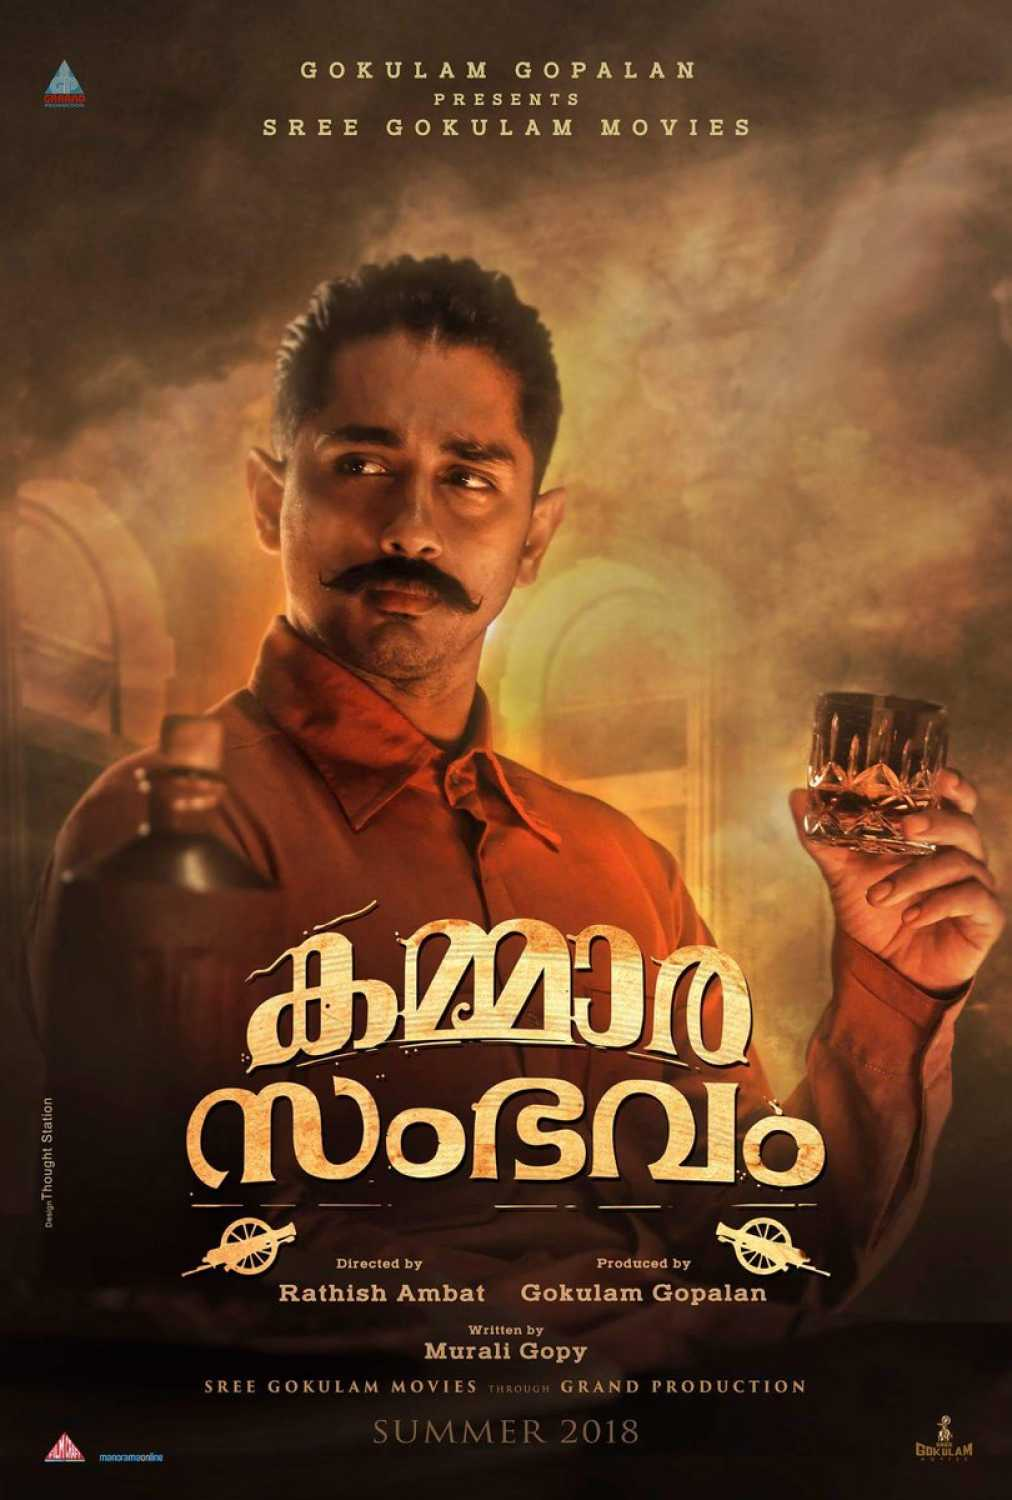 Siddharth Releases First Poster Of His First Malayalam Film